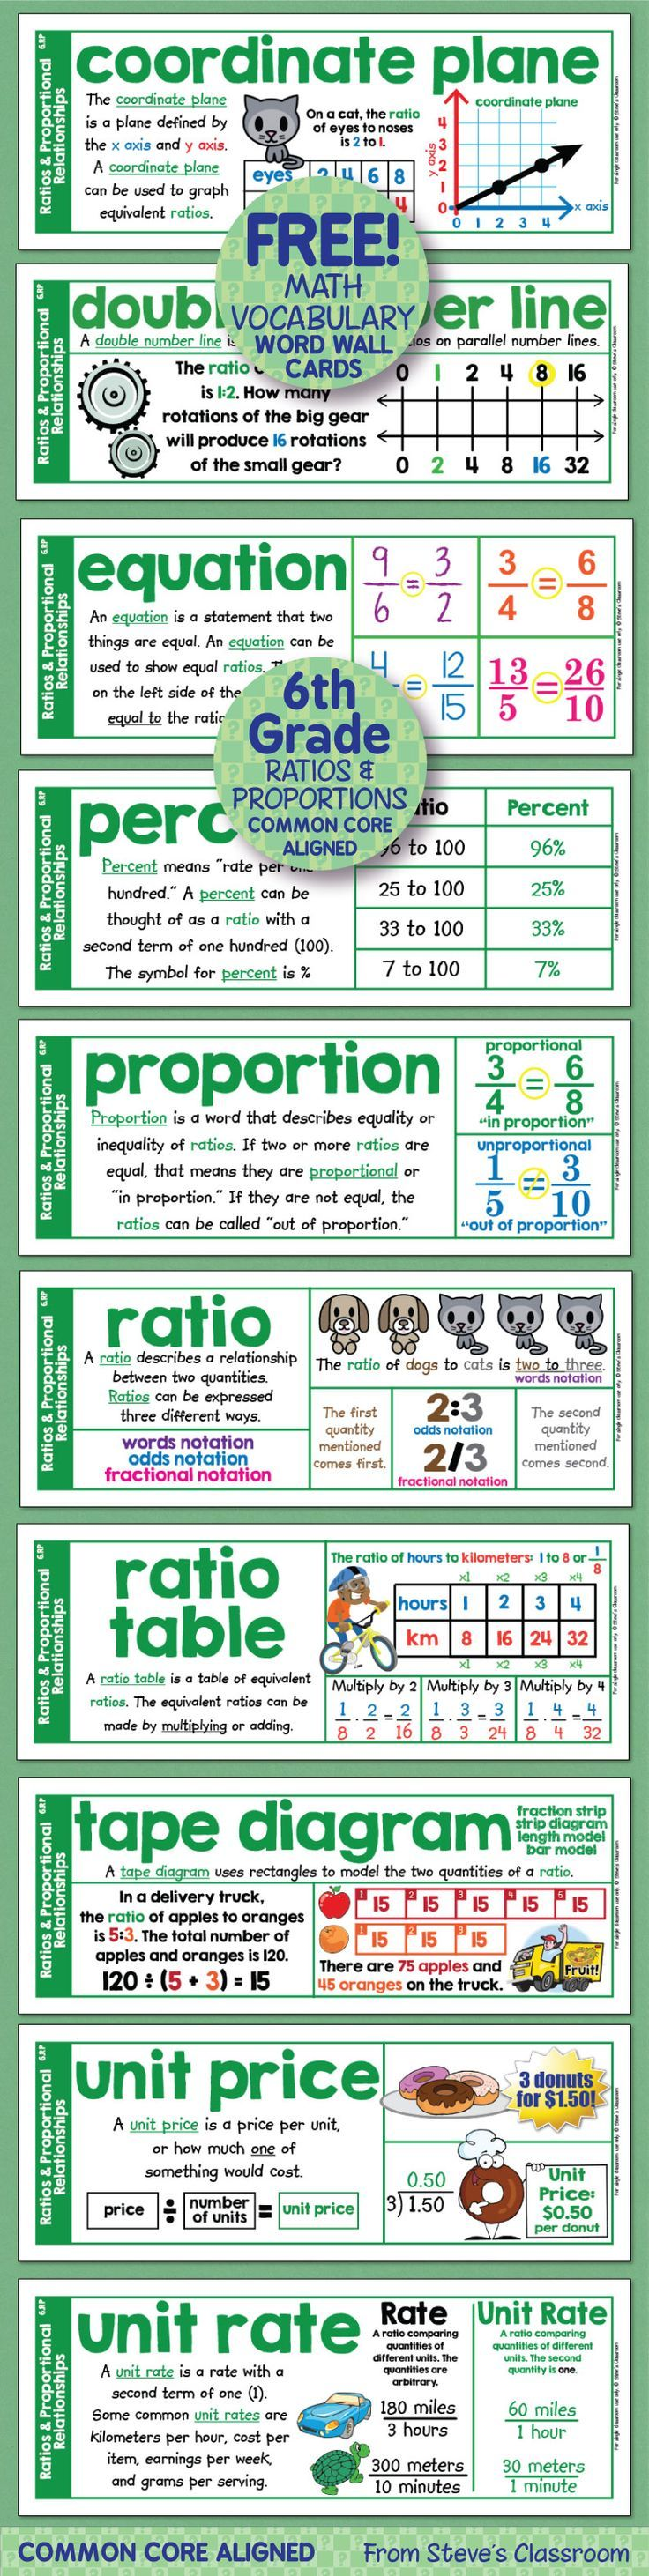 Sight Word Like Worksheet Excel Ratio And Proportion Worksheet Autumn Picture Simple Ratios A Sense Of Touch Worksheet Pdf with Parts Of Speech Worksheets Grade 9 Pdf Ratio And Proportion Worksheet Autumn Picture Simple Ratios A  Word Wall  Cards For Sixth Grade Download Ukg Hindi Worksheets